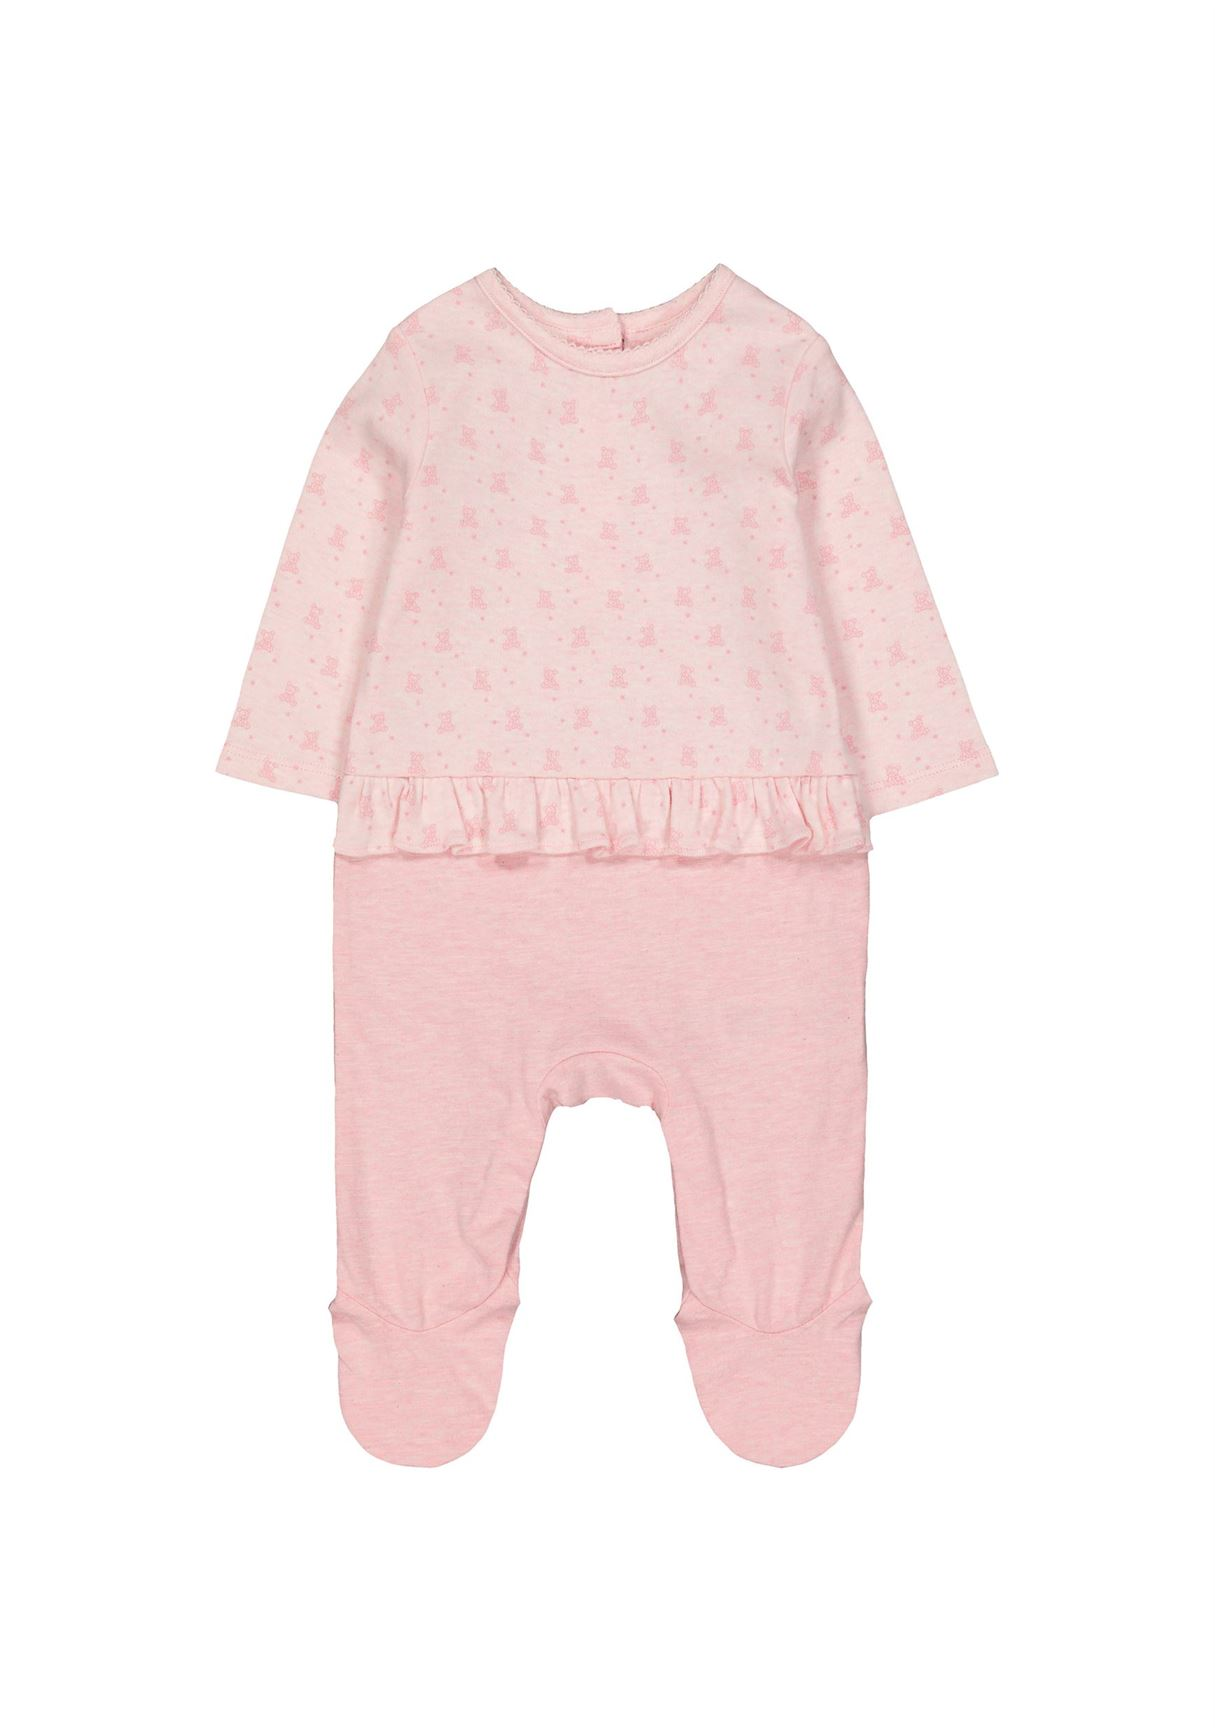 Mothercare Girls Pink Printed Sleepsuit